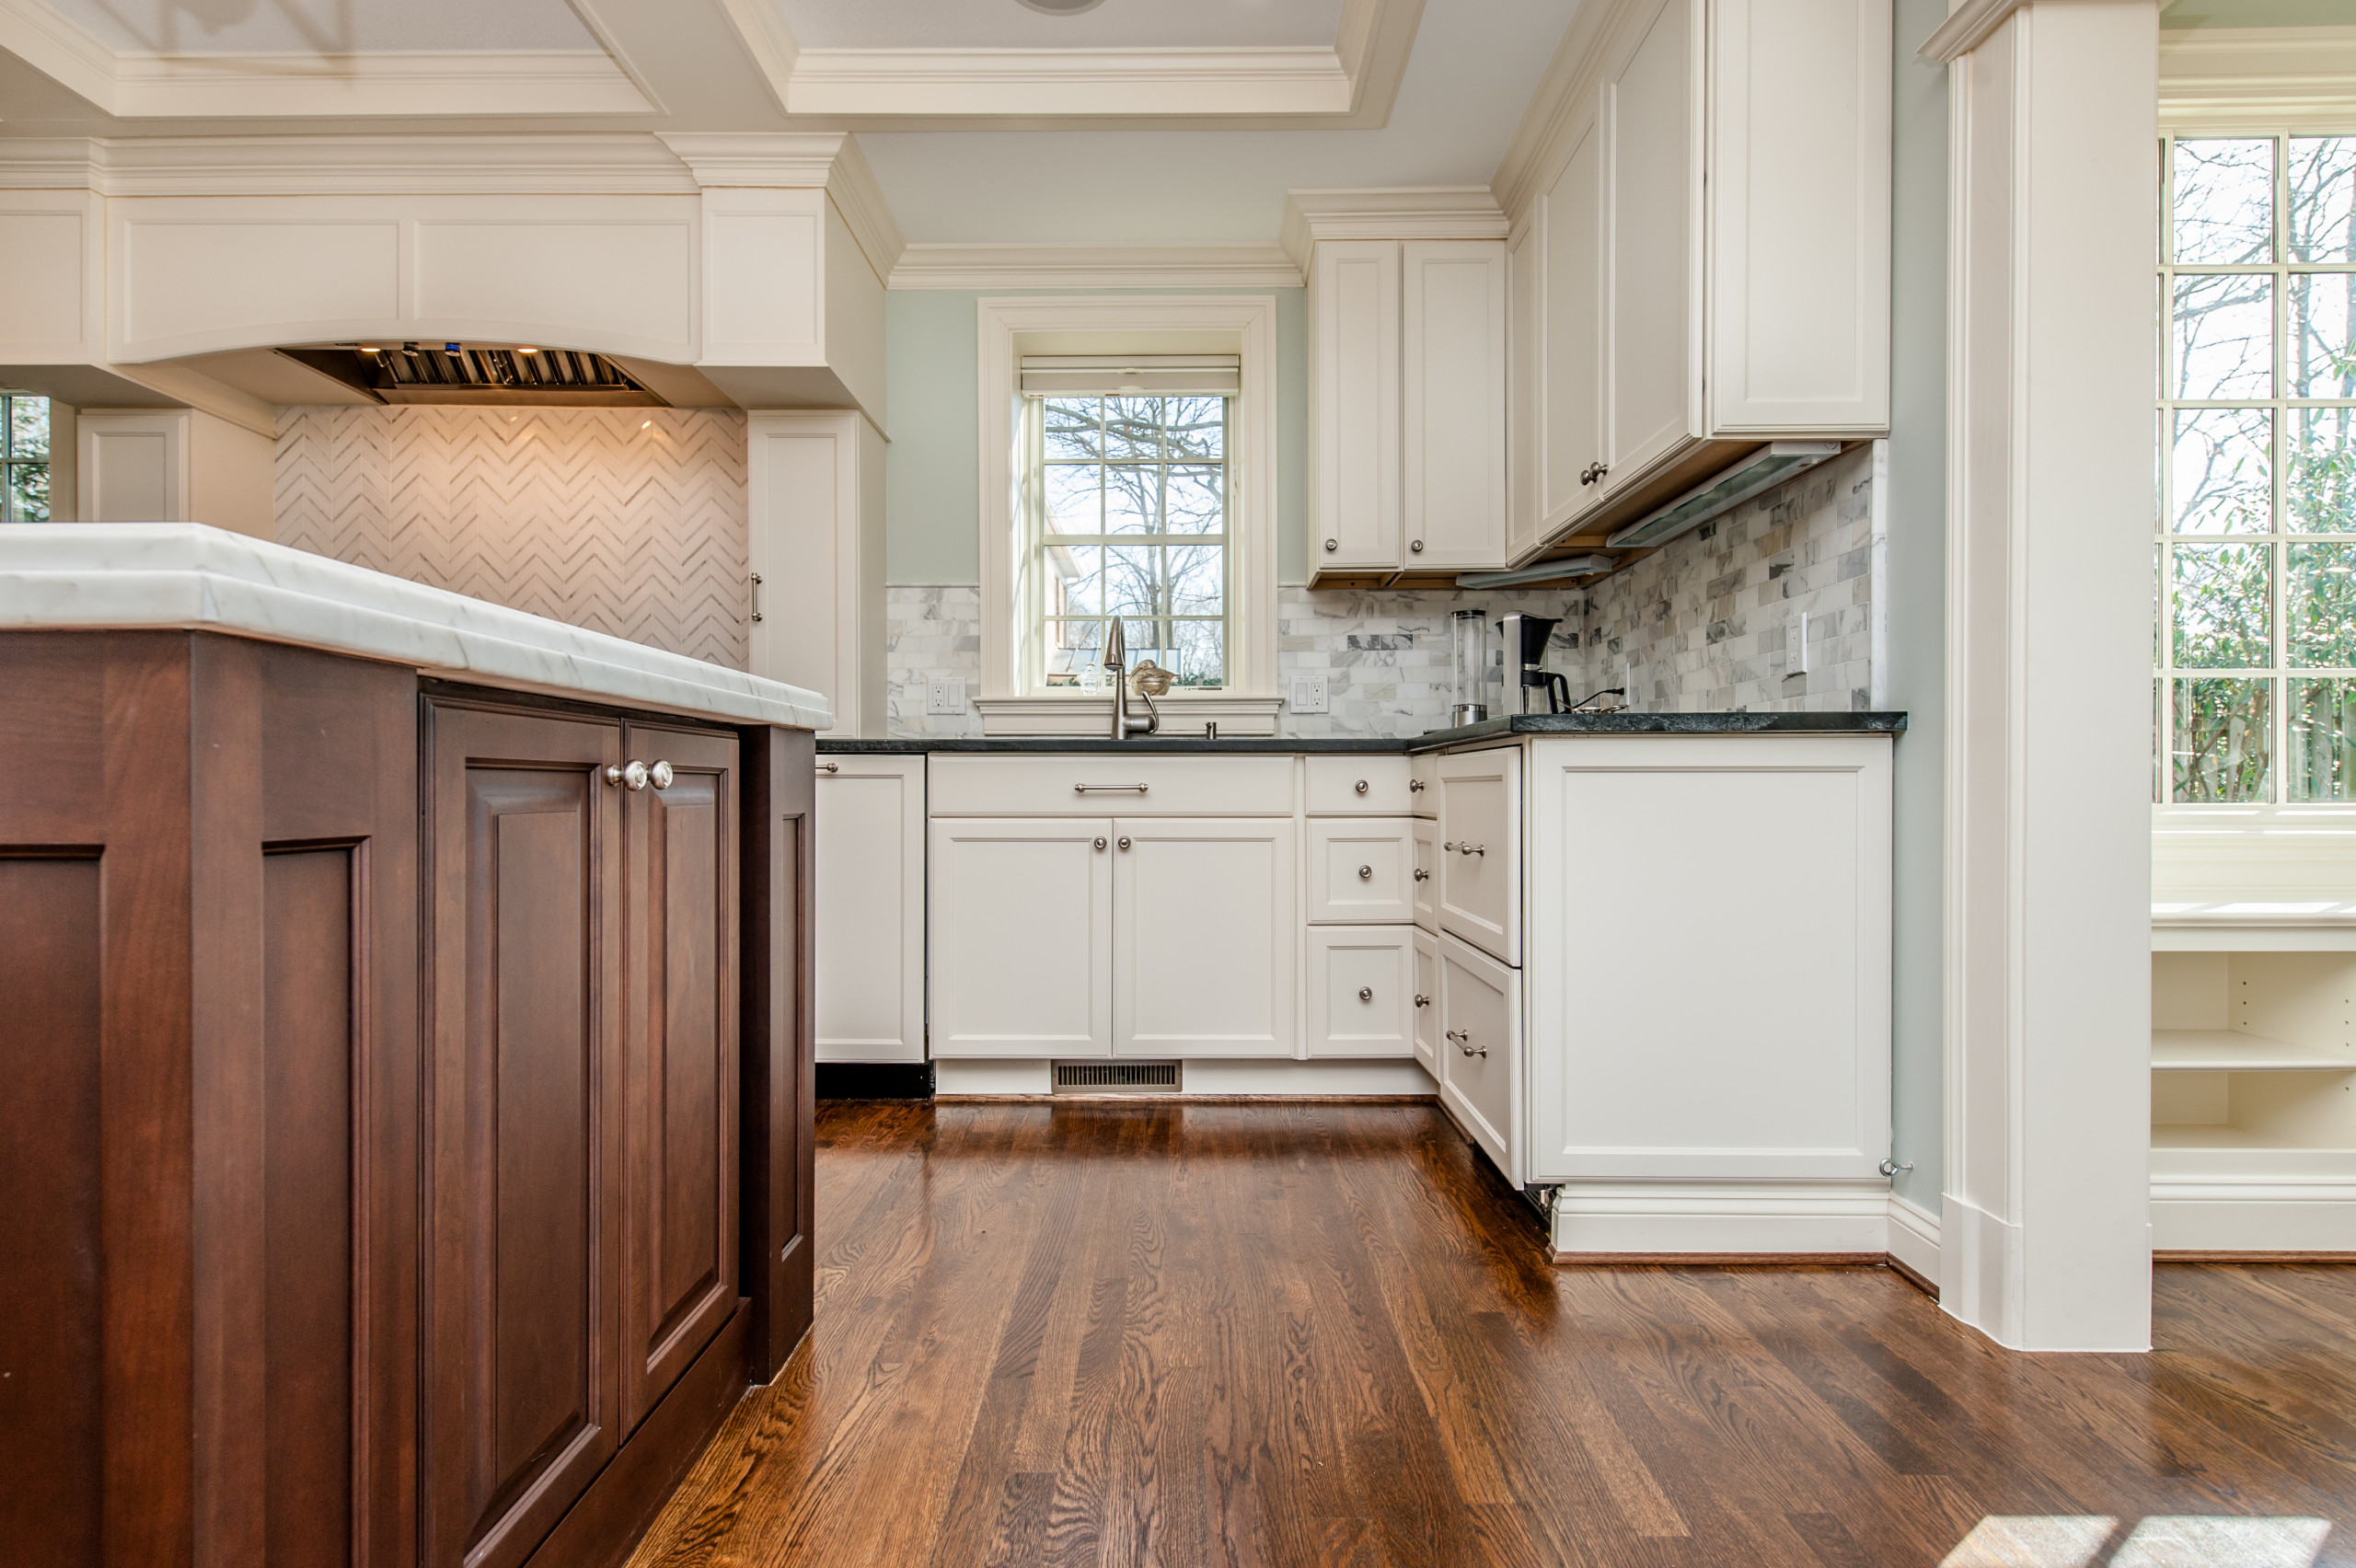 Bethesda, MD Luxury Transitional Kitchen & House Remodel